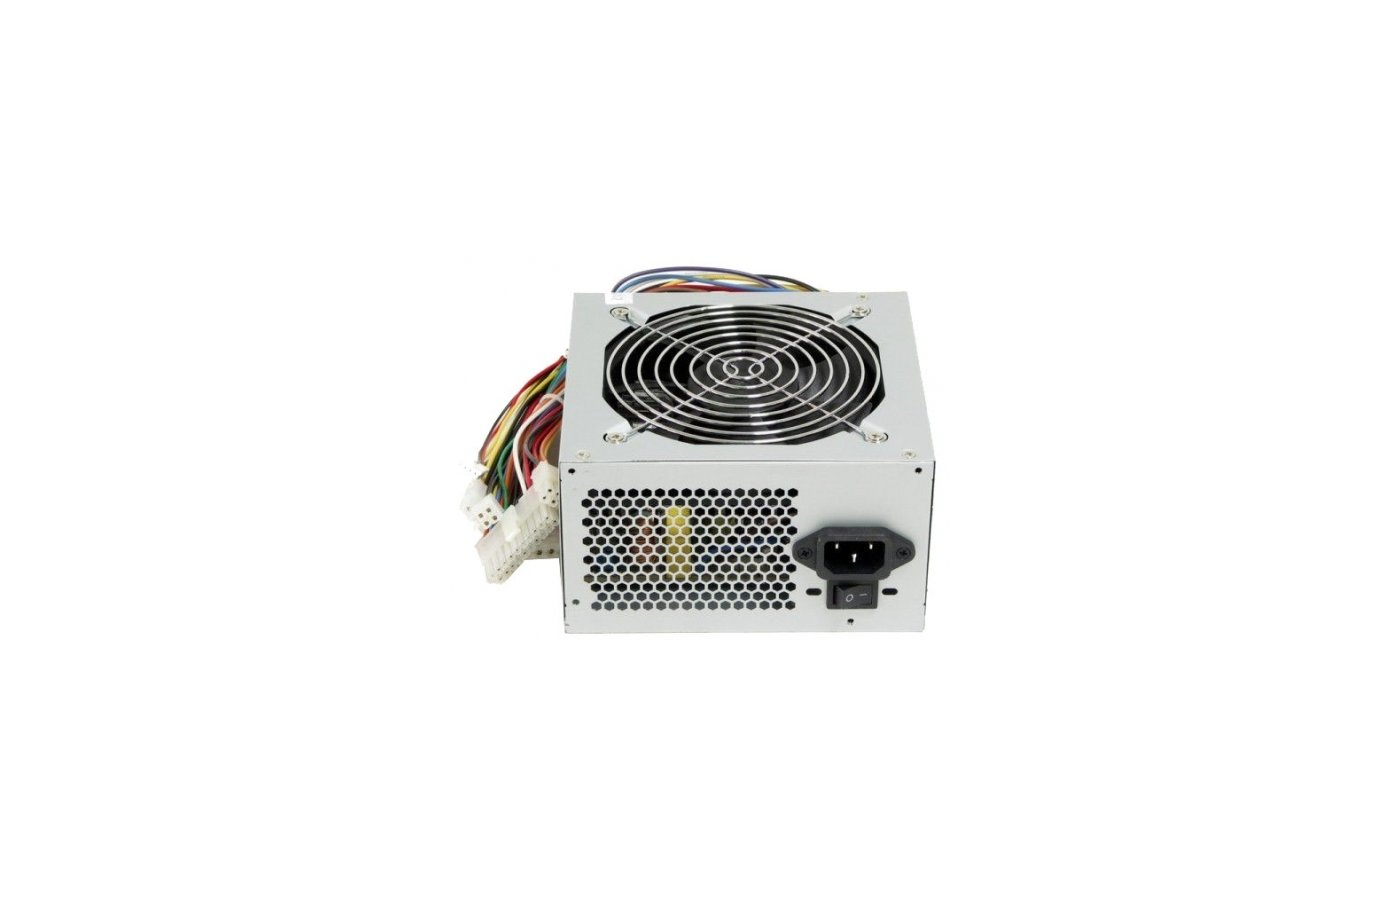 Блок питания LinkWorld ATX 600W LW6-600 (24+4pin) 120mm fan 4xSATA RTL